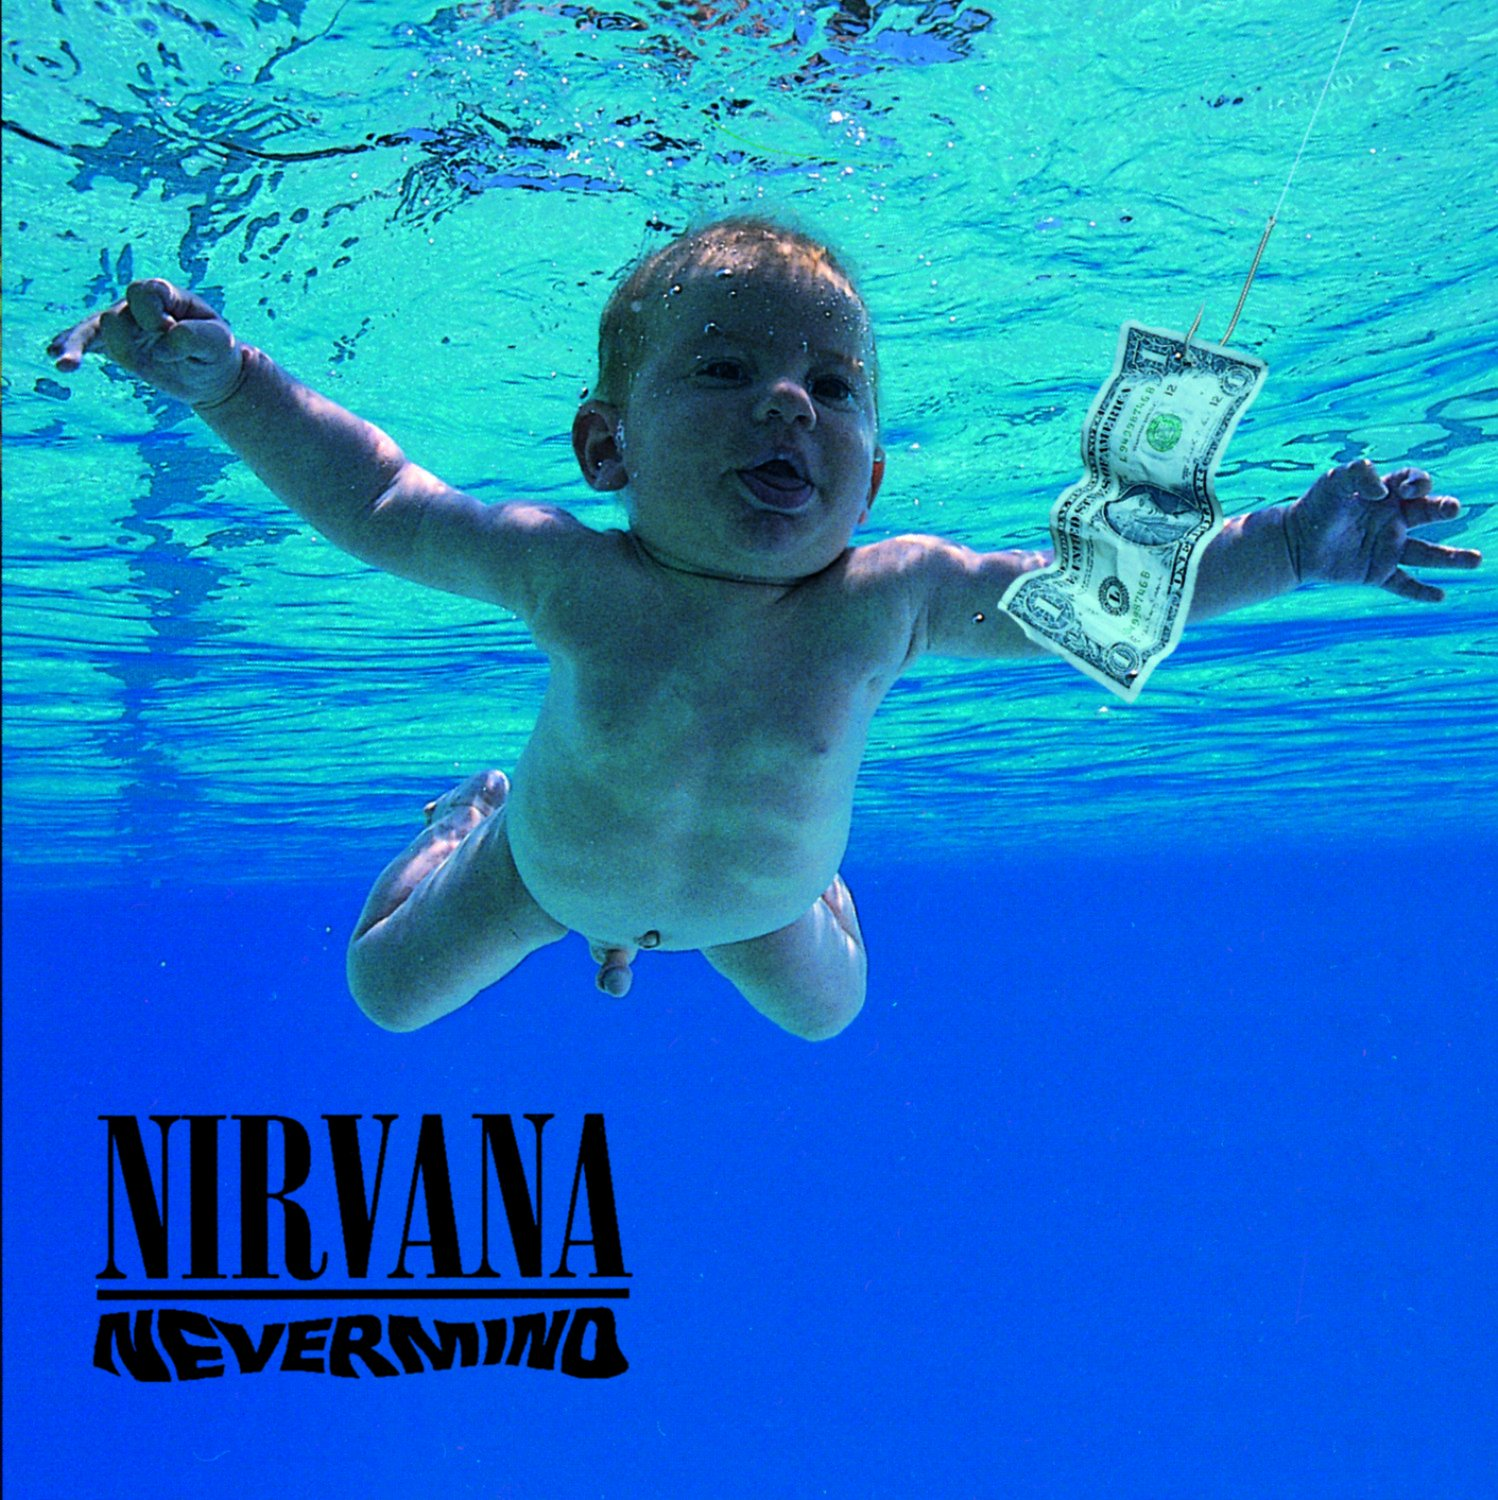 Bilderesultat for nirvana nevermind